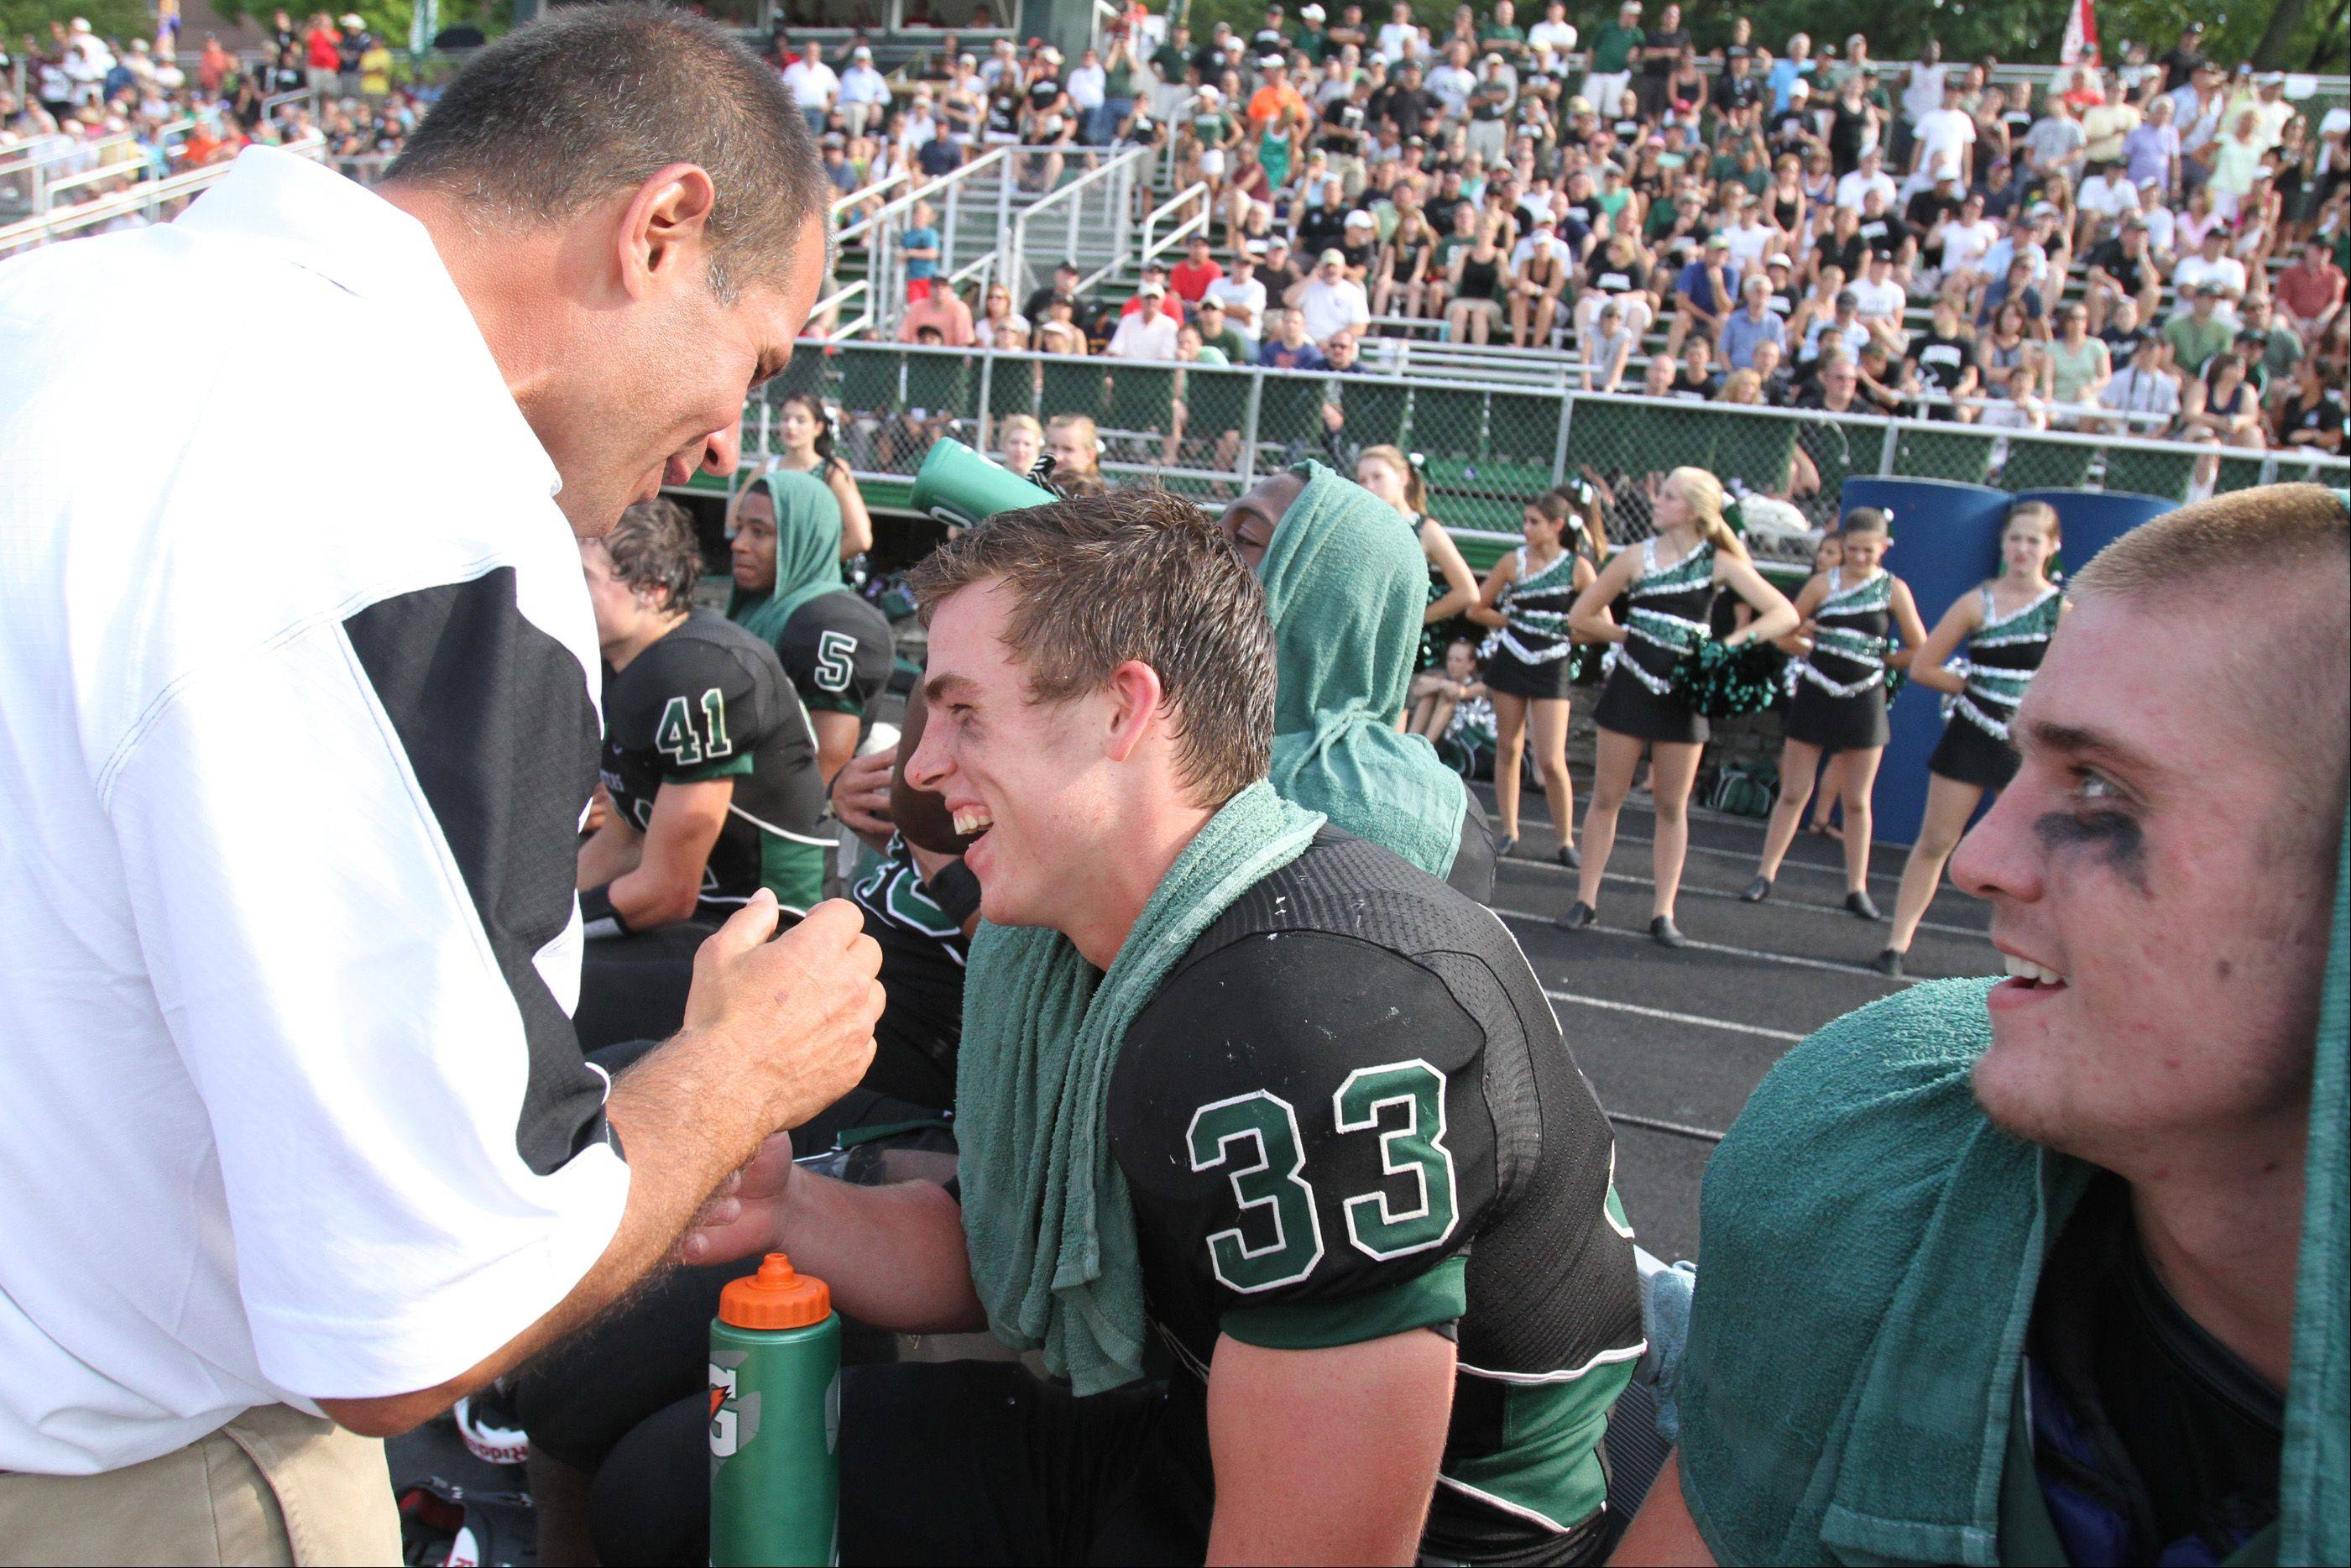 Week -1- Photos from the Wheaton Warrenville South at Glenbard West football game Saturday, August 25.